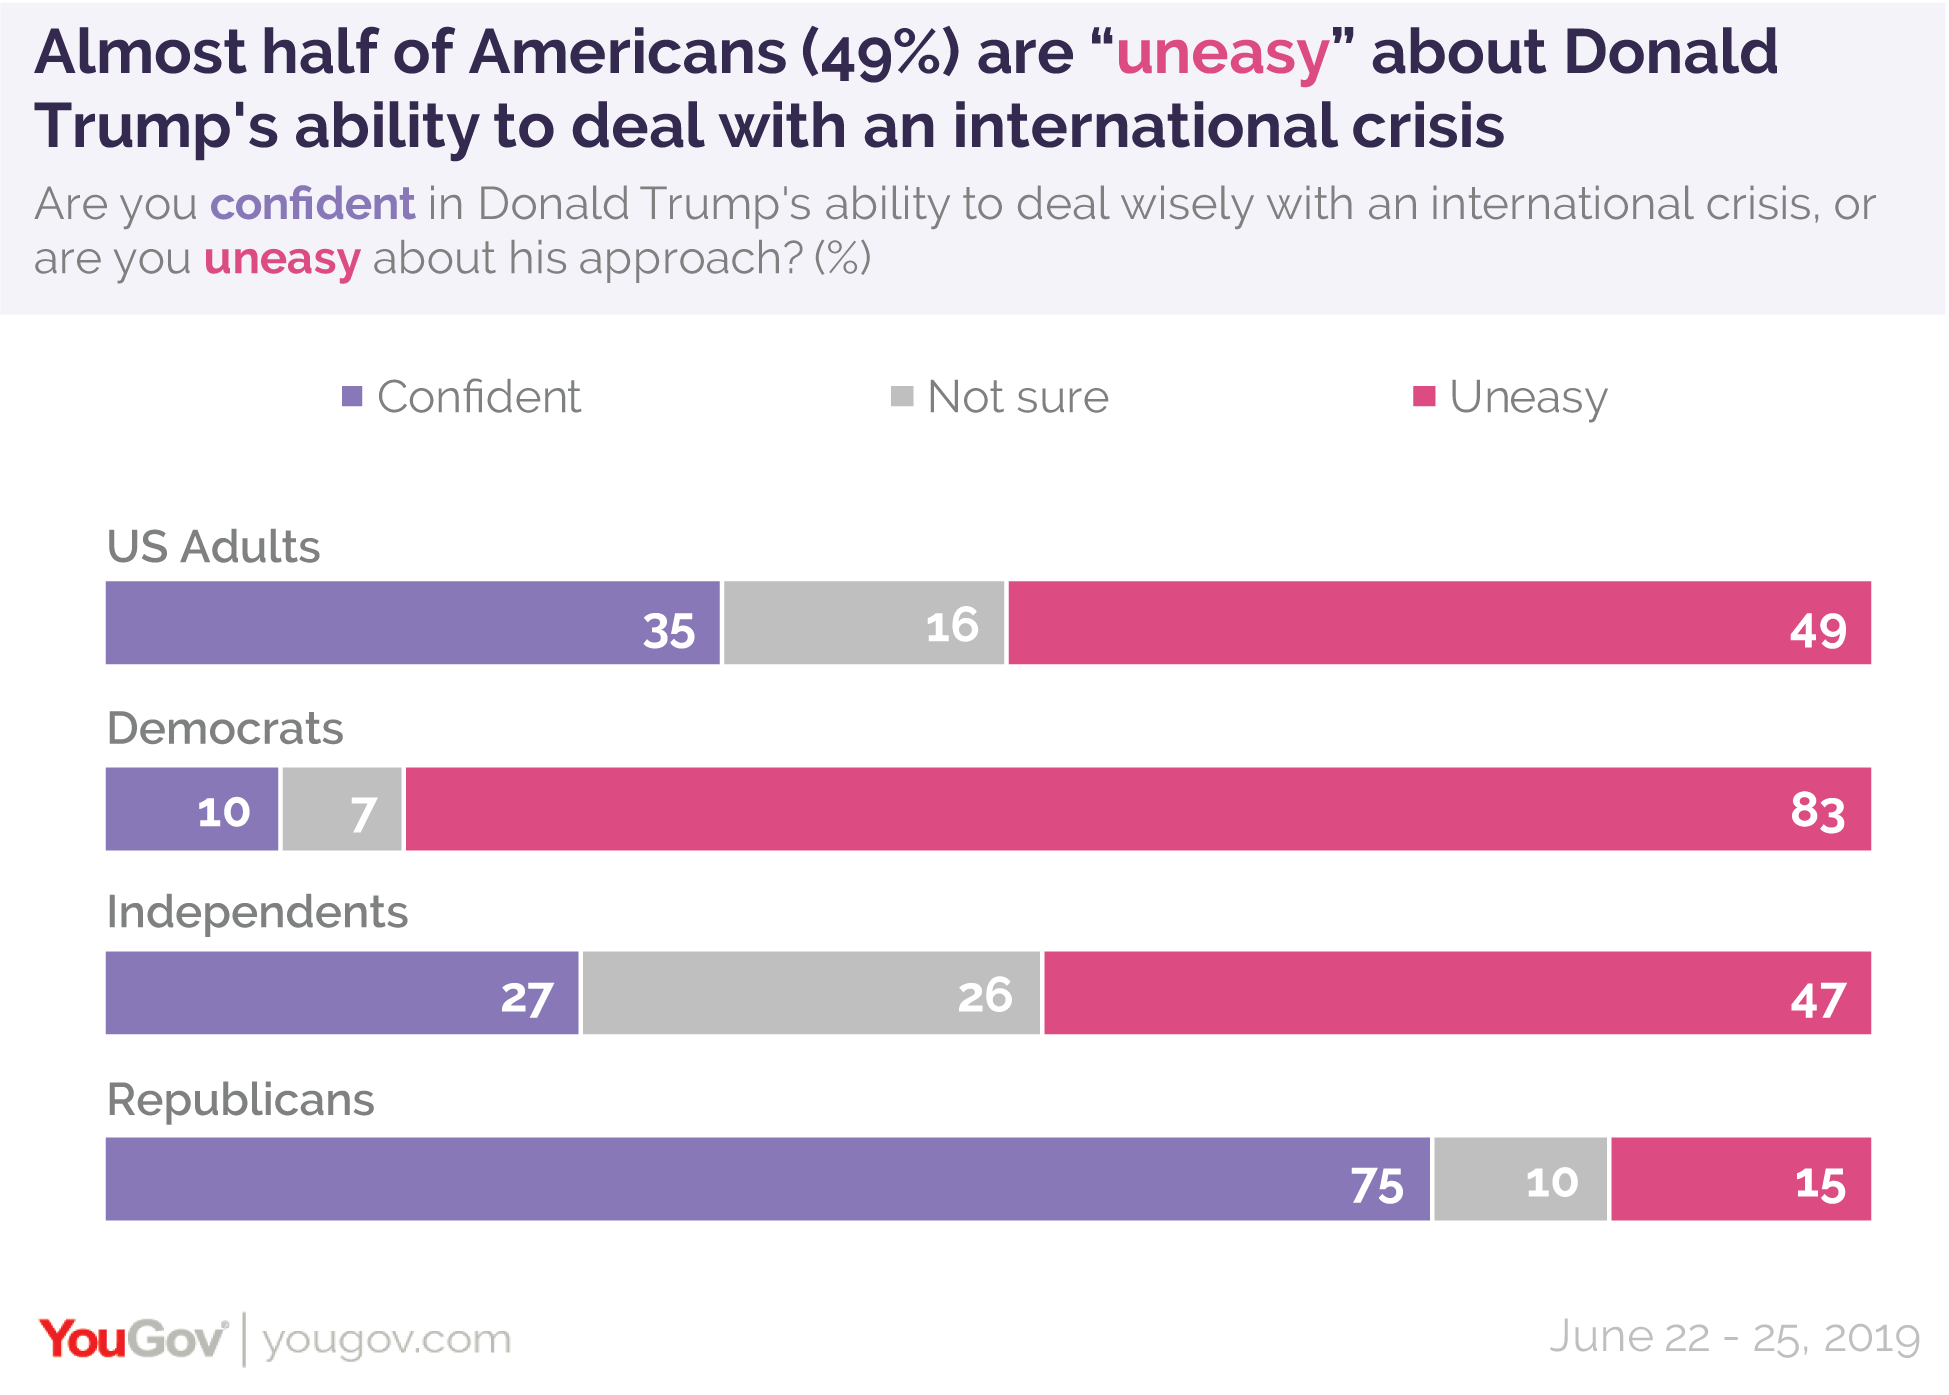 Almost half of Americans are uneasy about Donald Trump's ability to deal with an international crisis